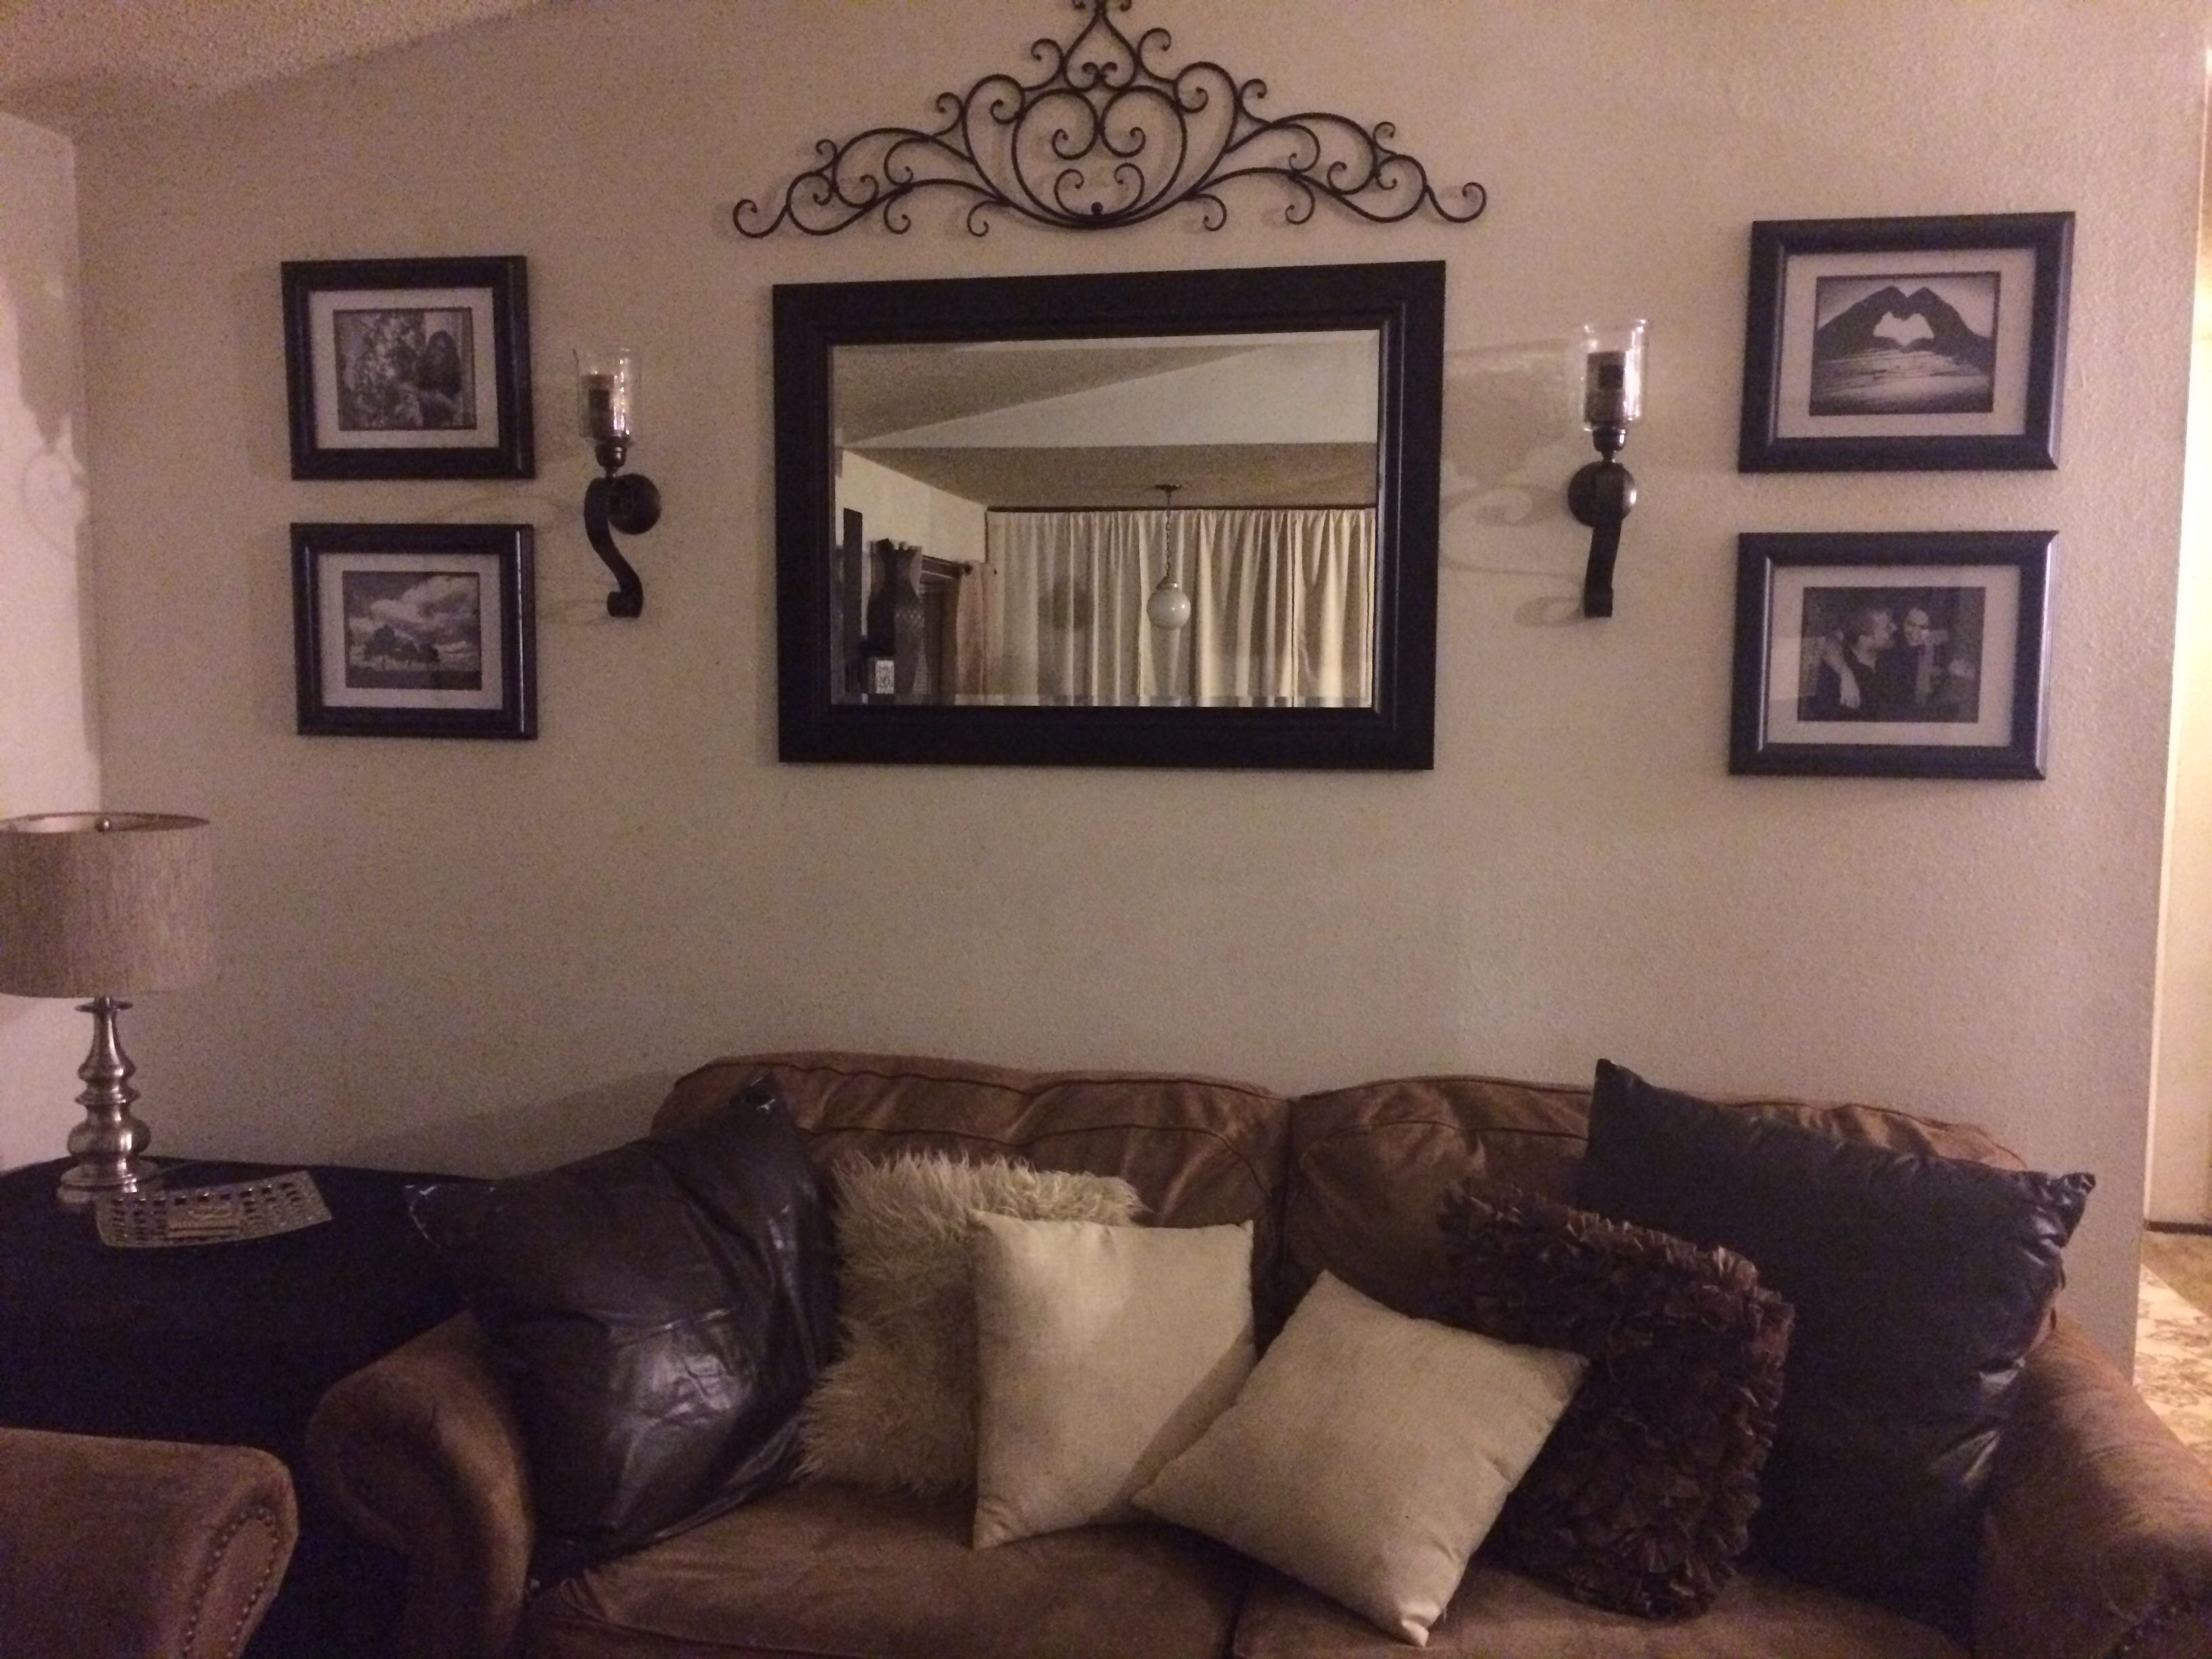 Behind Couch Wall In Living Room Mirror, Frame, Sconces, And Metal Decor